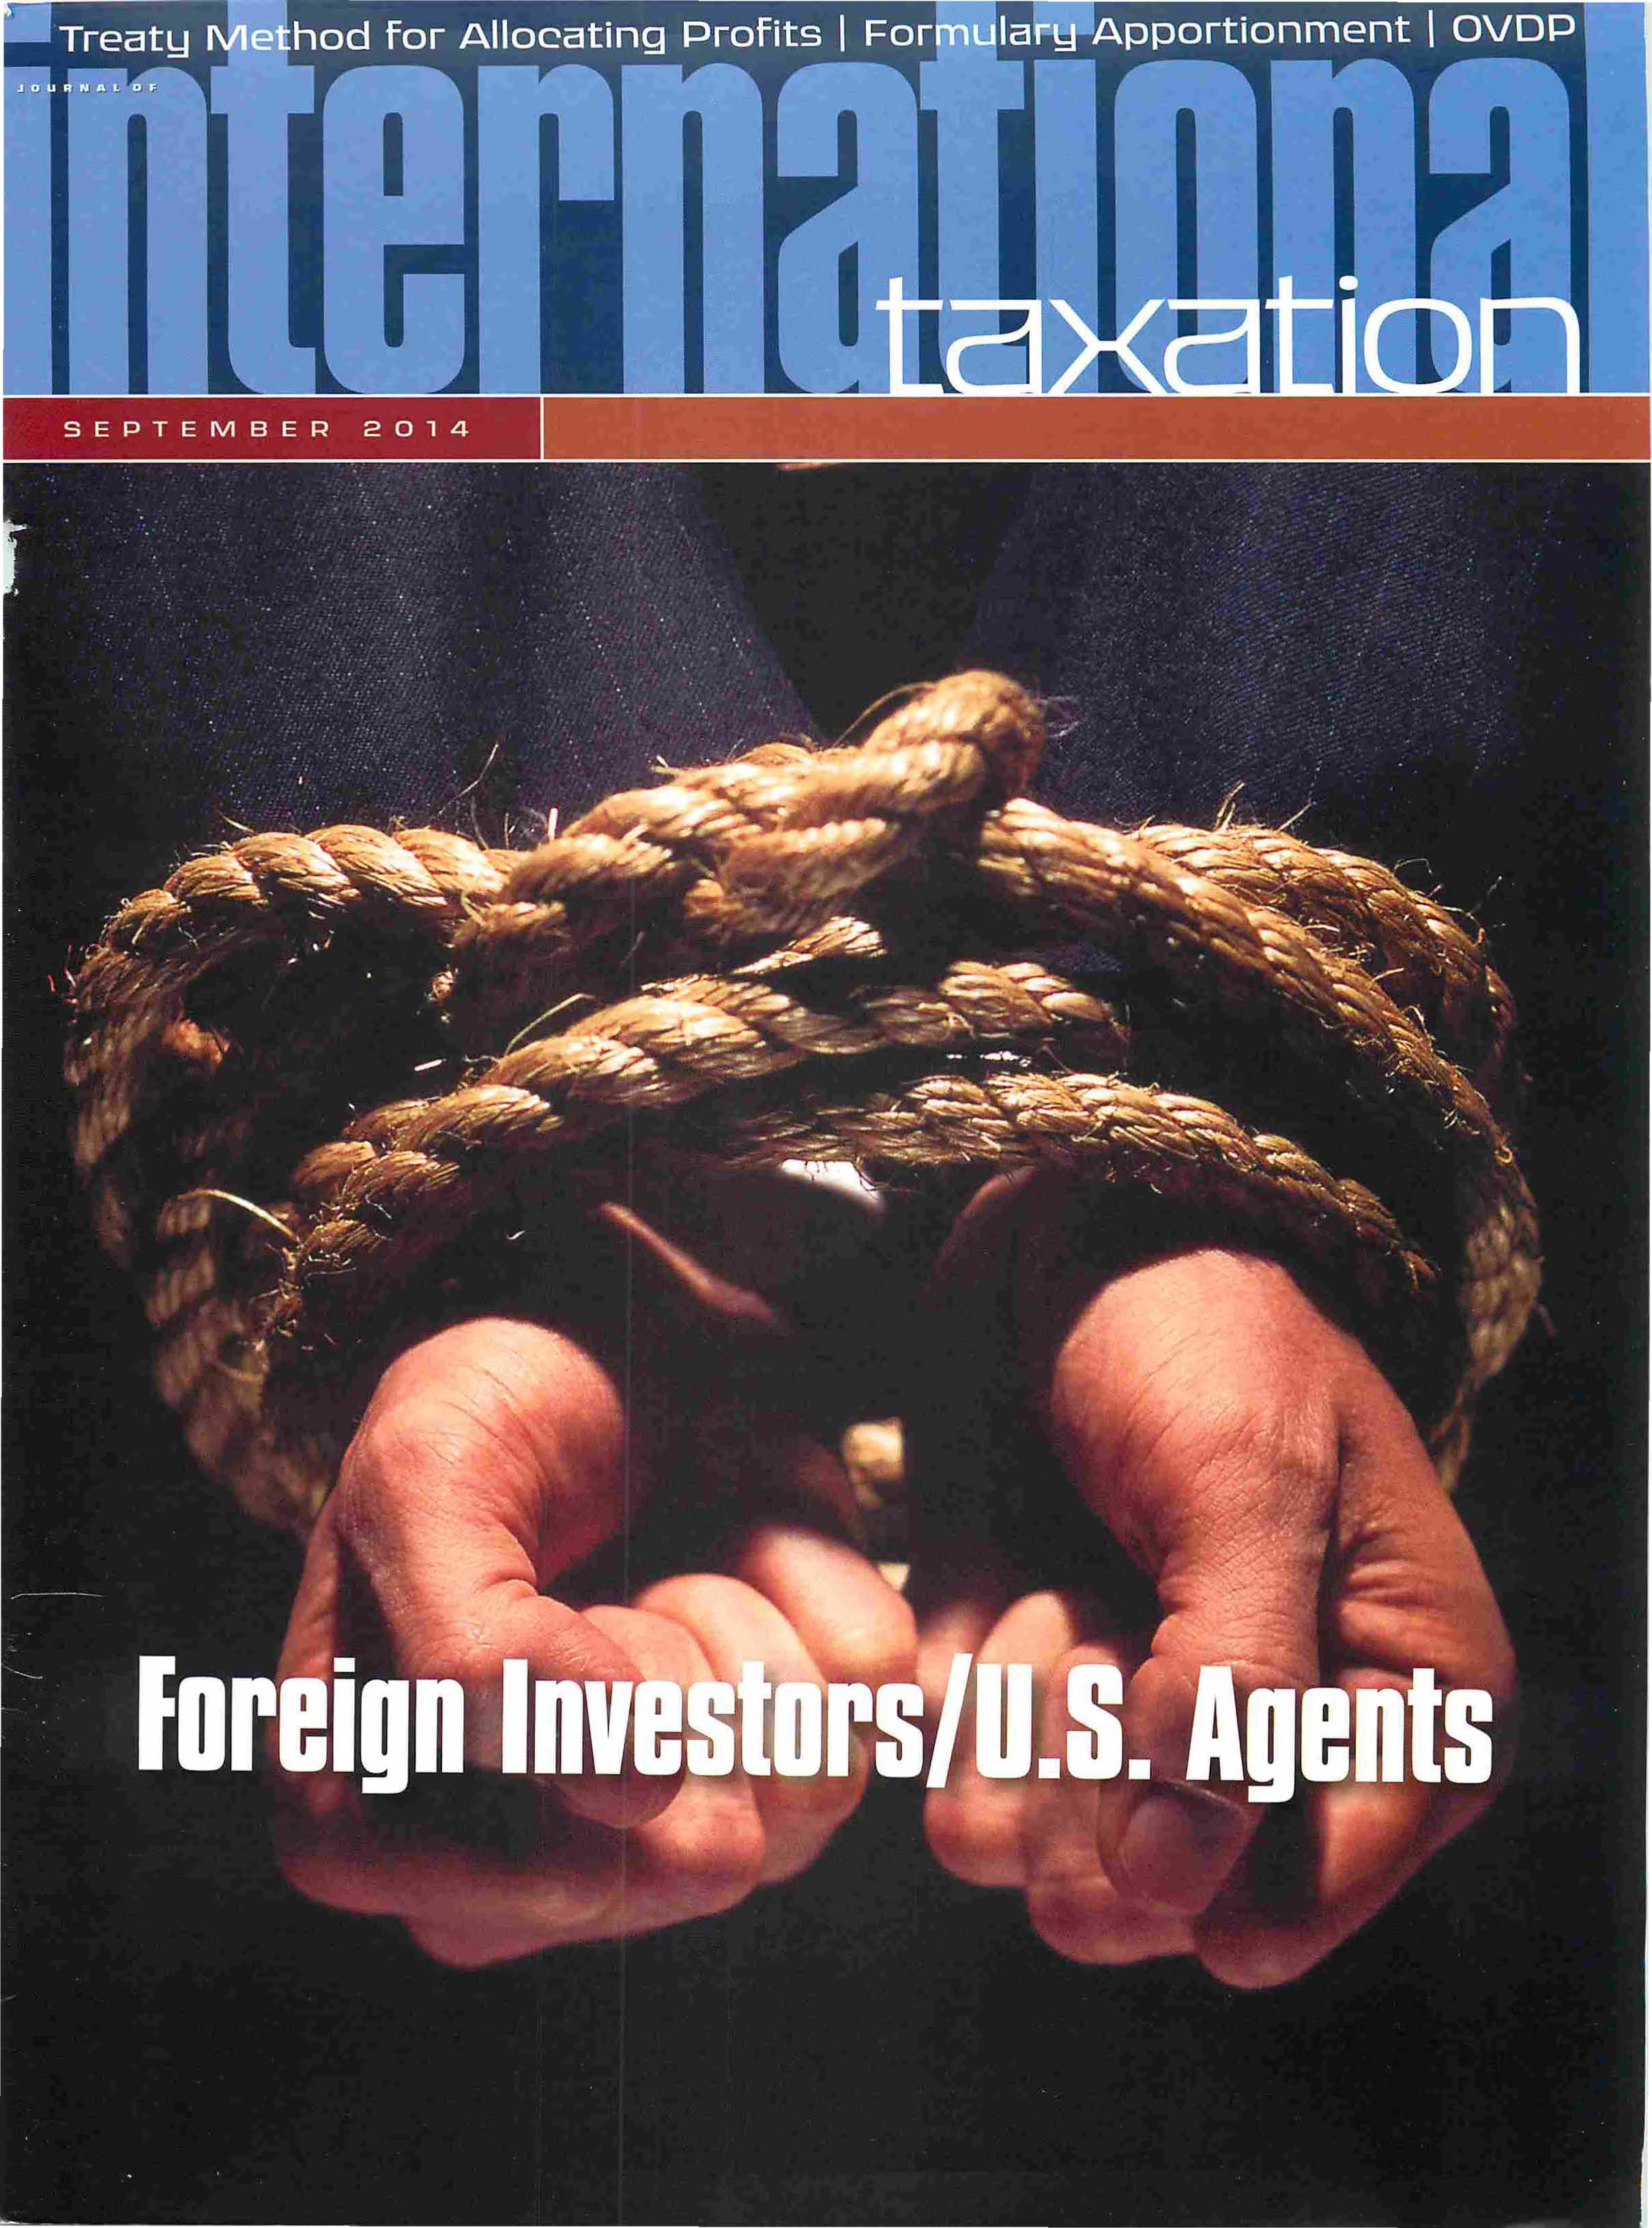 Foreign Investors Beware: Attribution of U.S. Trade or Business Through U.S. Agents